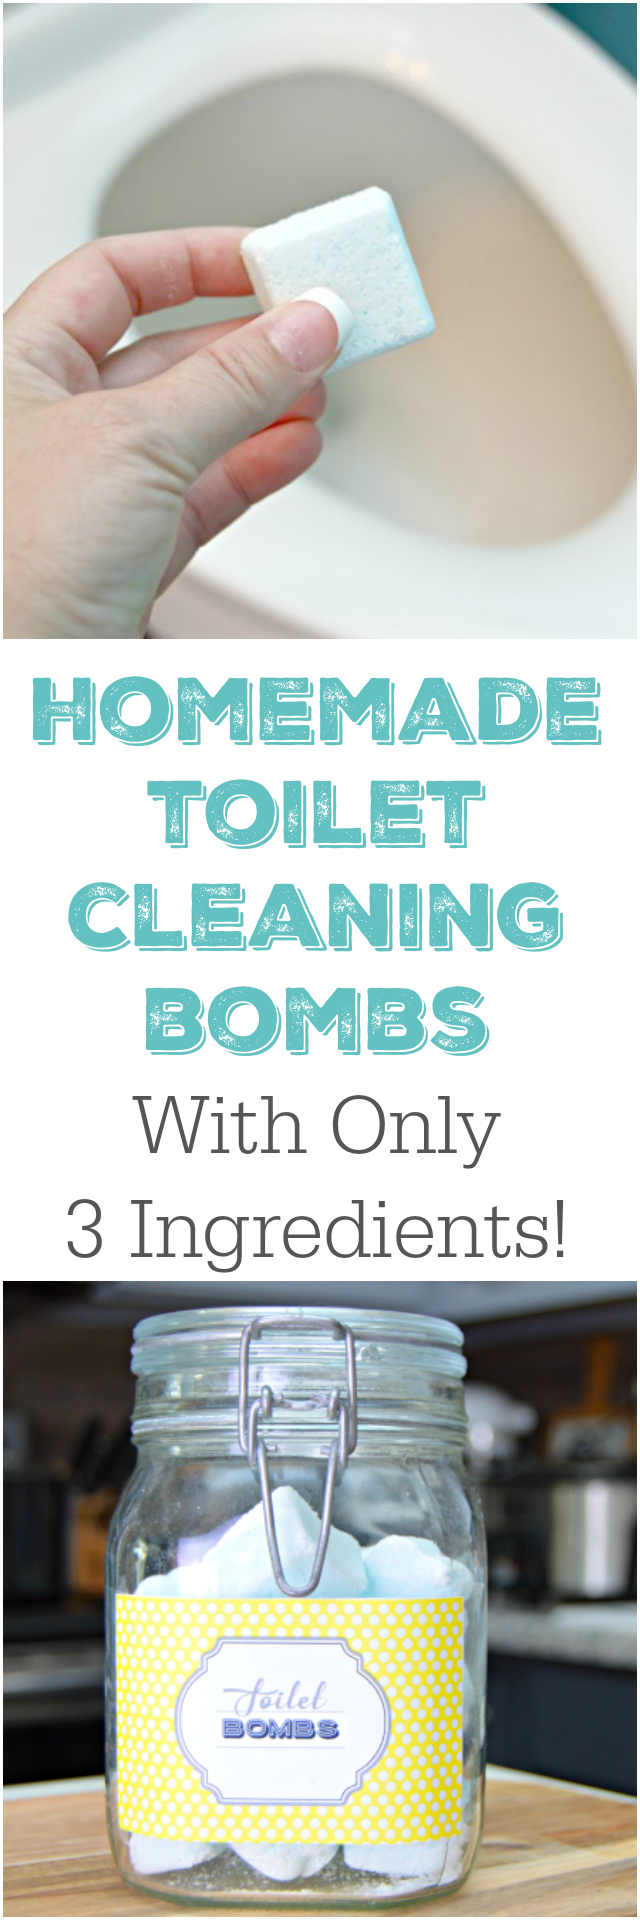 3 ingredient homemade toilet cleaning bombs - Homemade Bathroom Cleaner